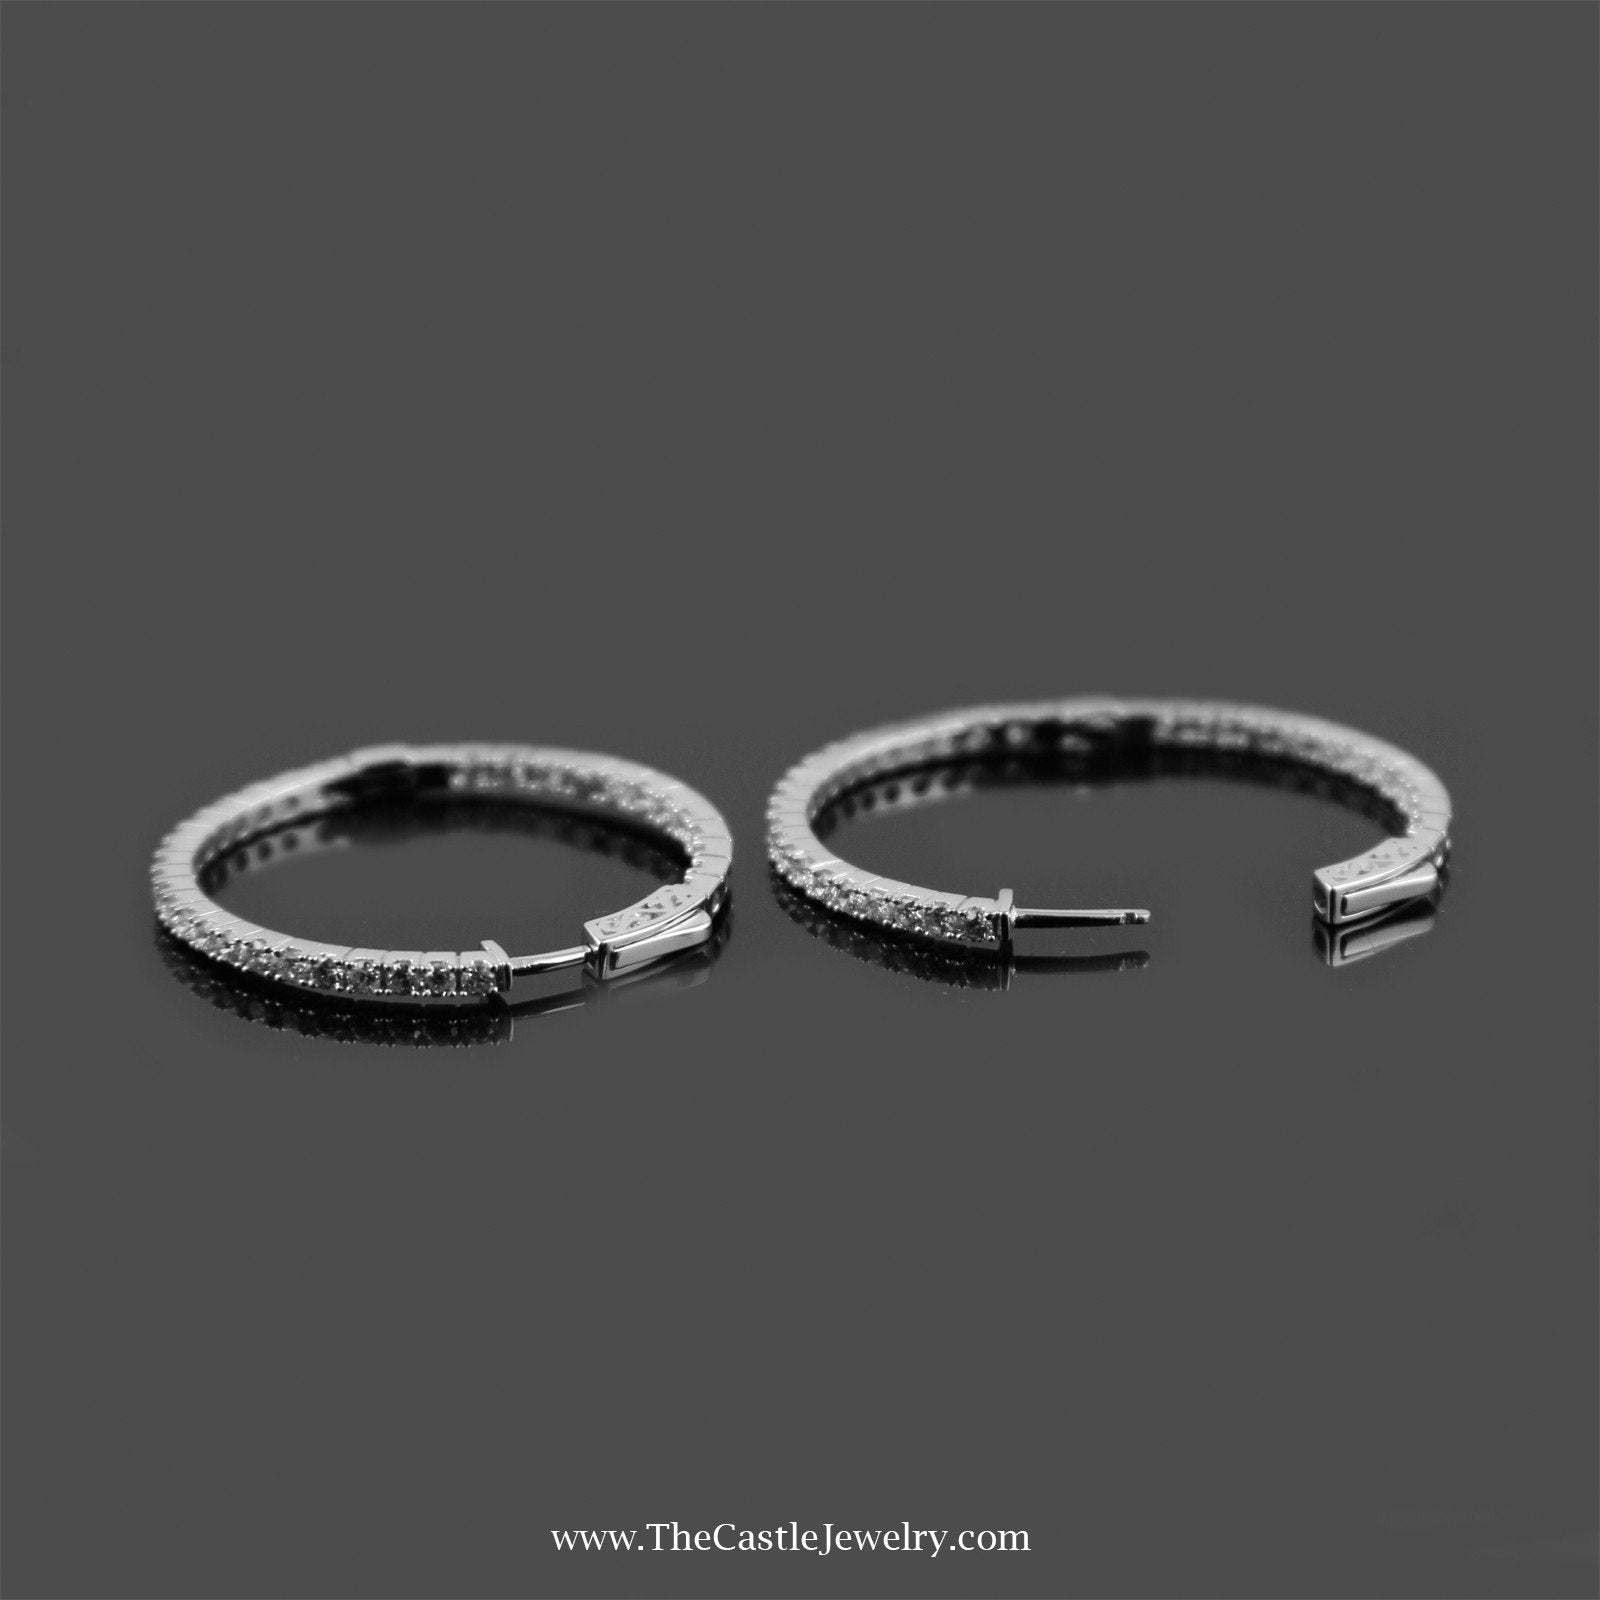 Stunning In & Out 1.5cttw Diamond Hoops in 14K White Gold-1